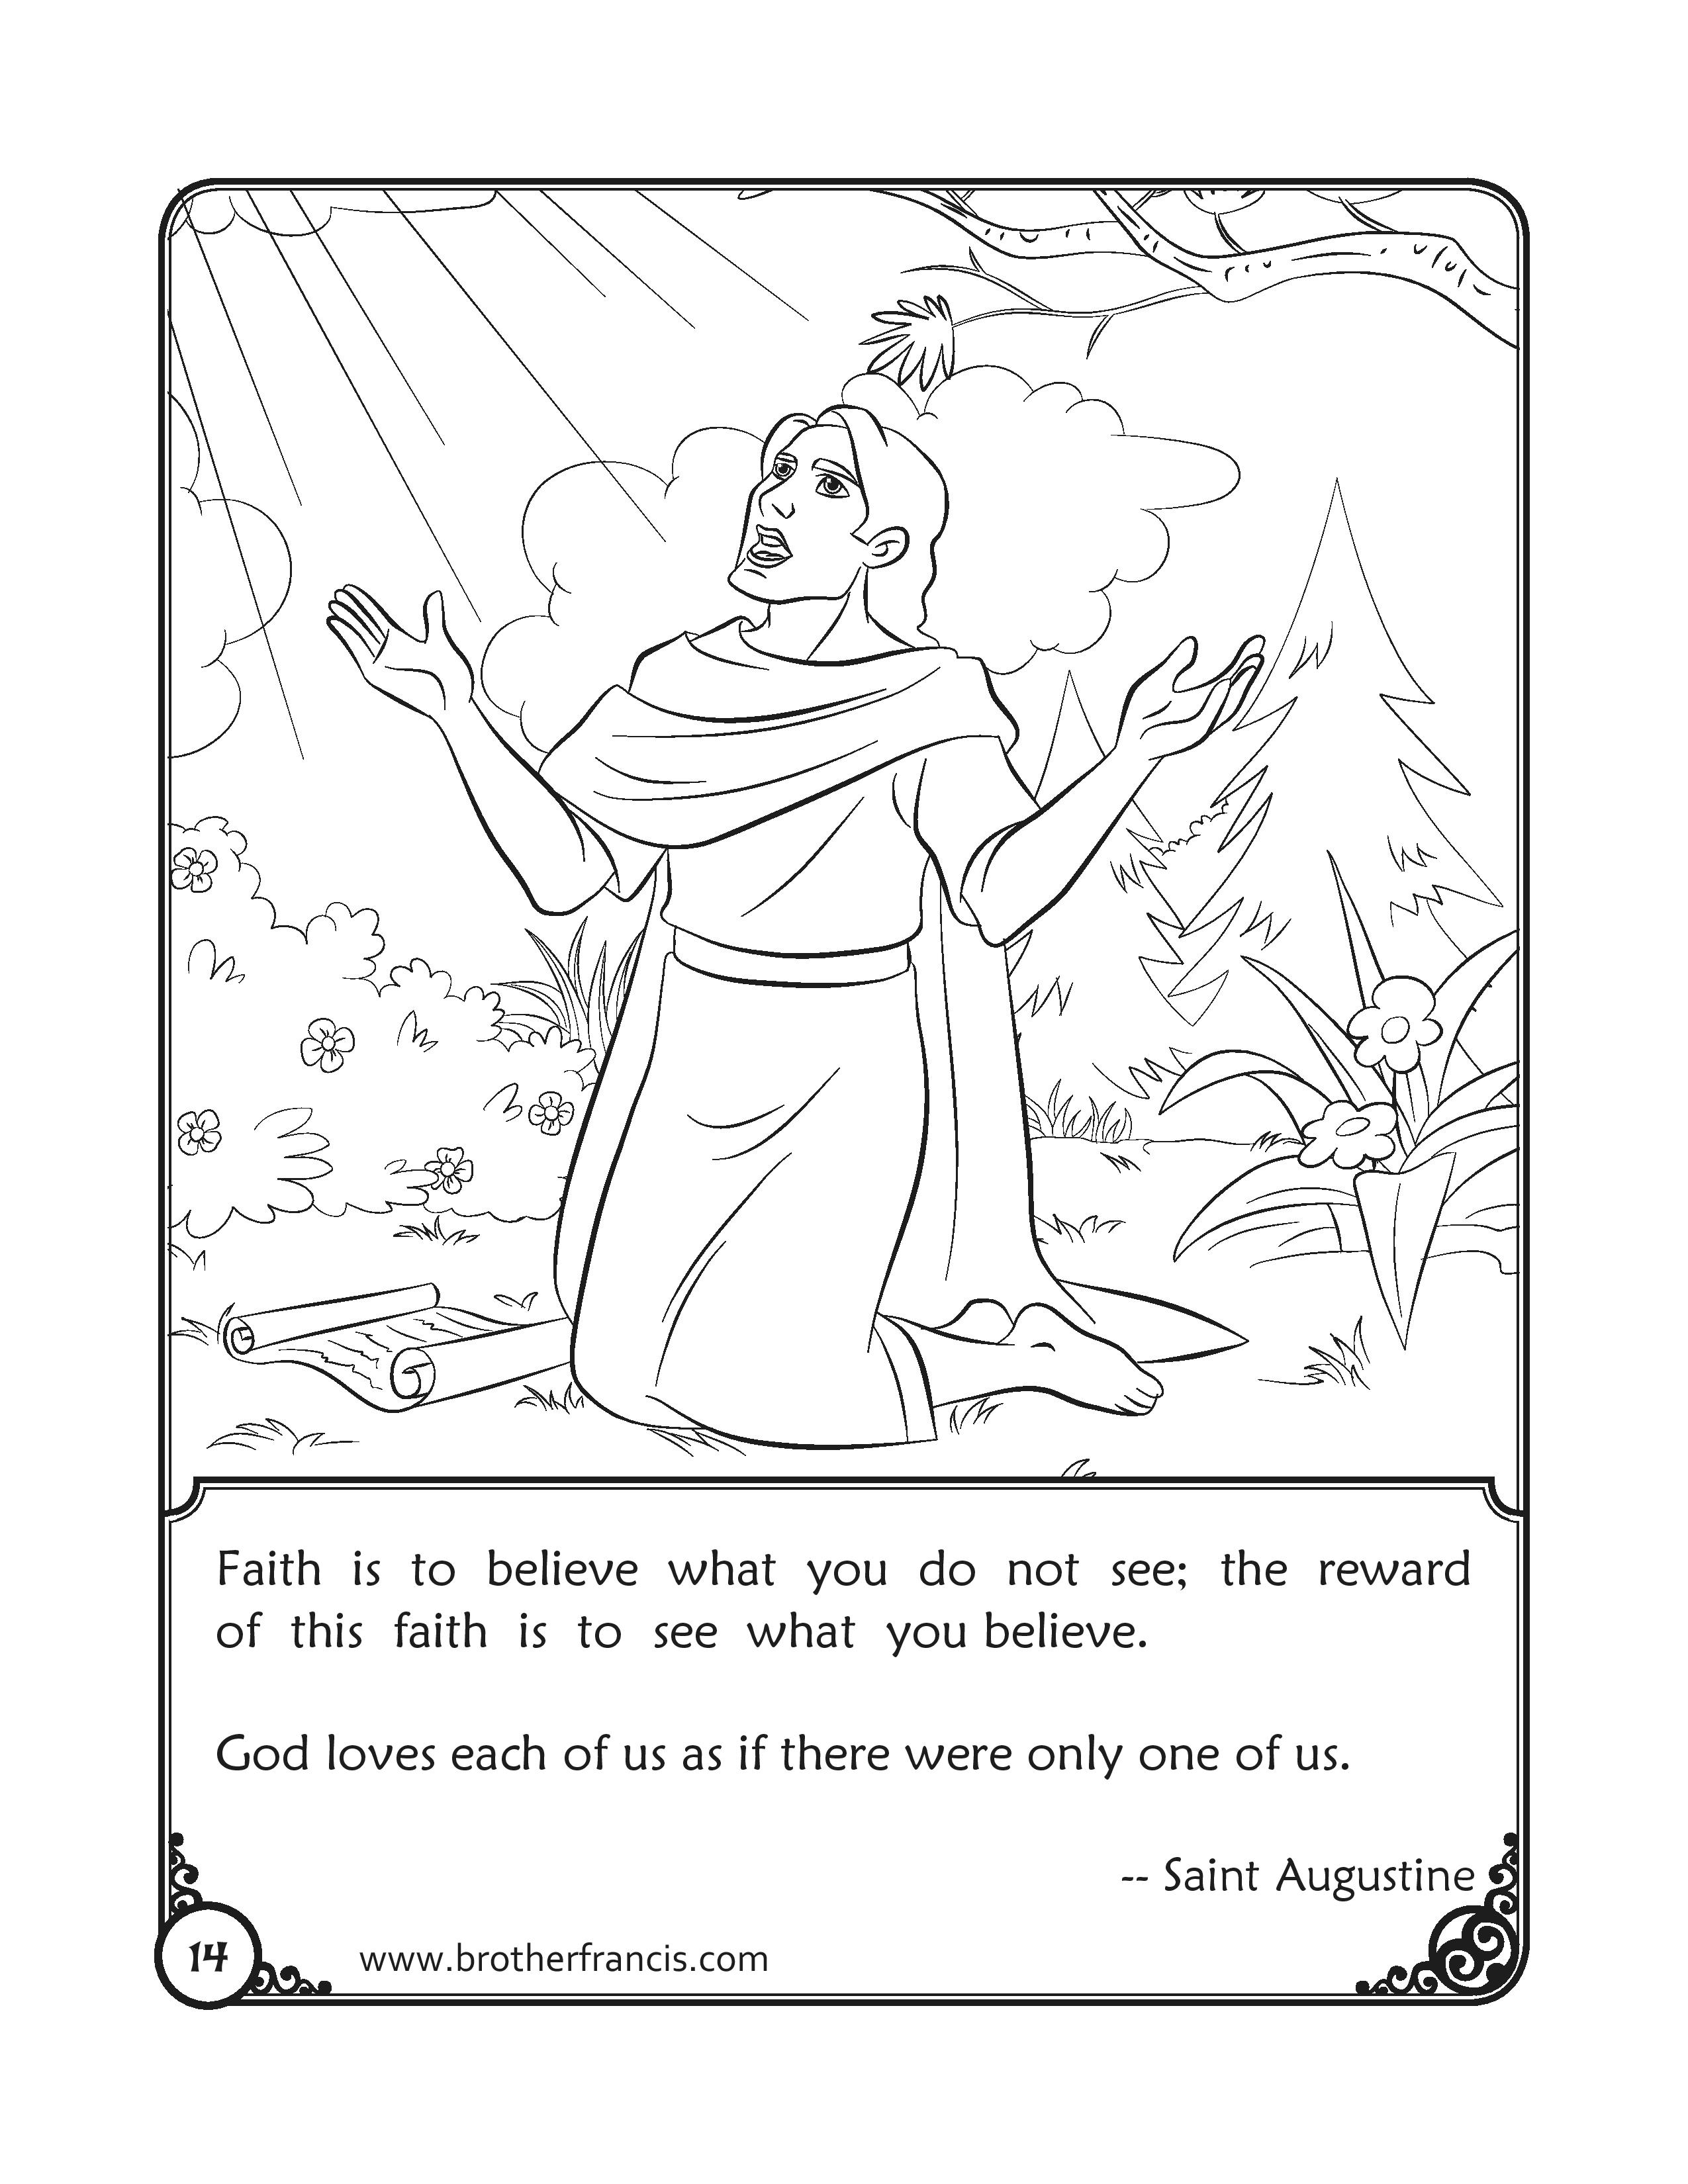 Colouring Page_saint-augustine-quotes-coloring-page-brother-francis-page-001